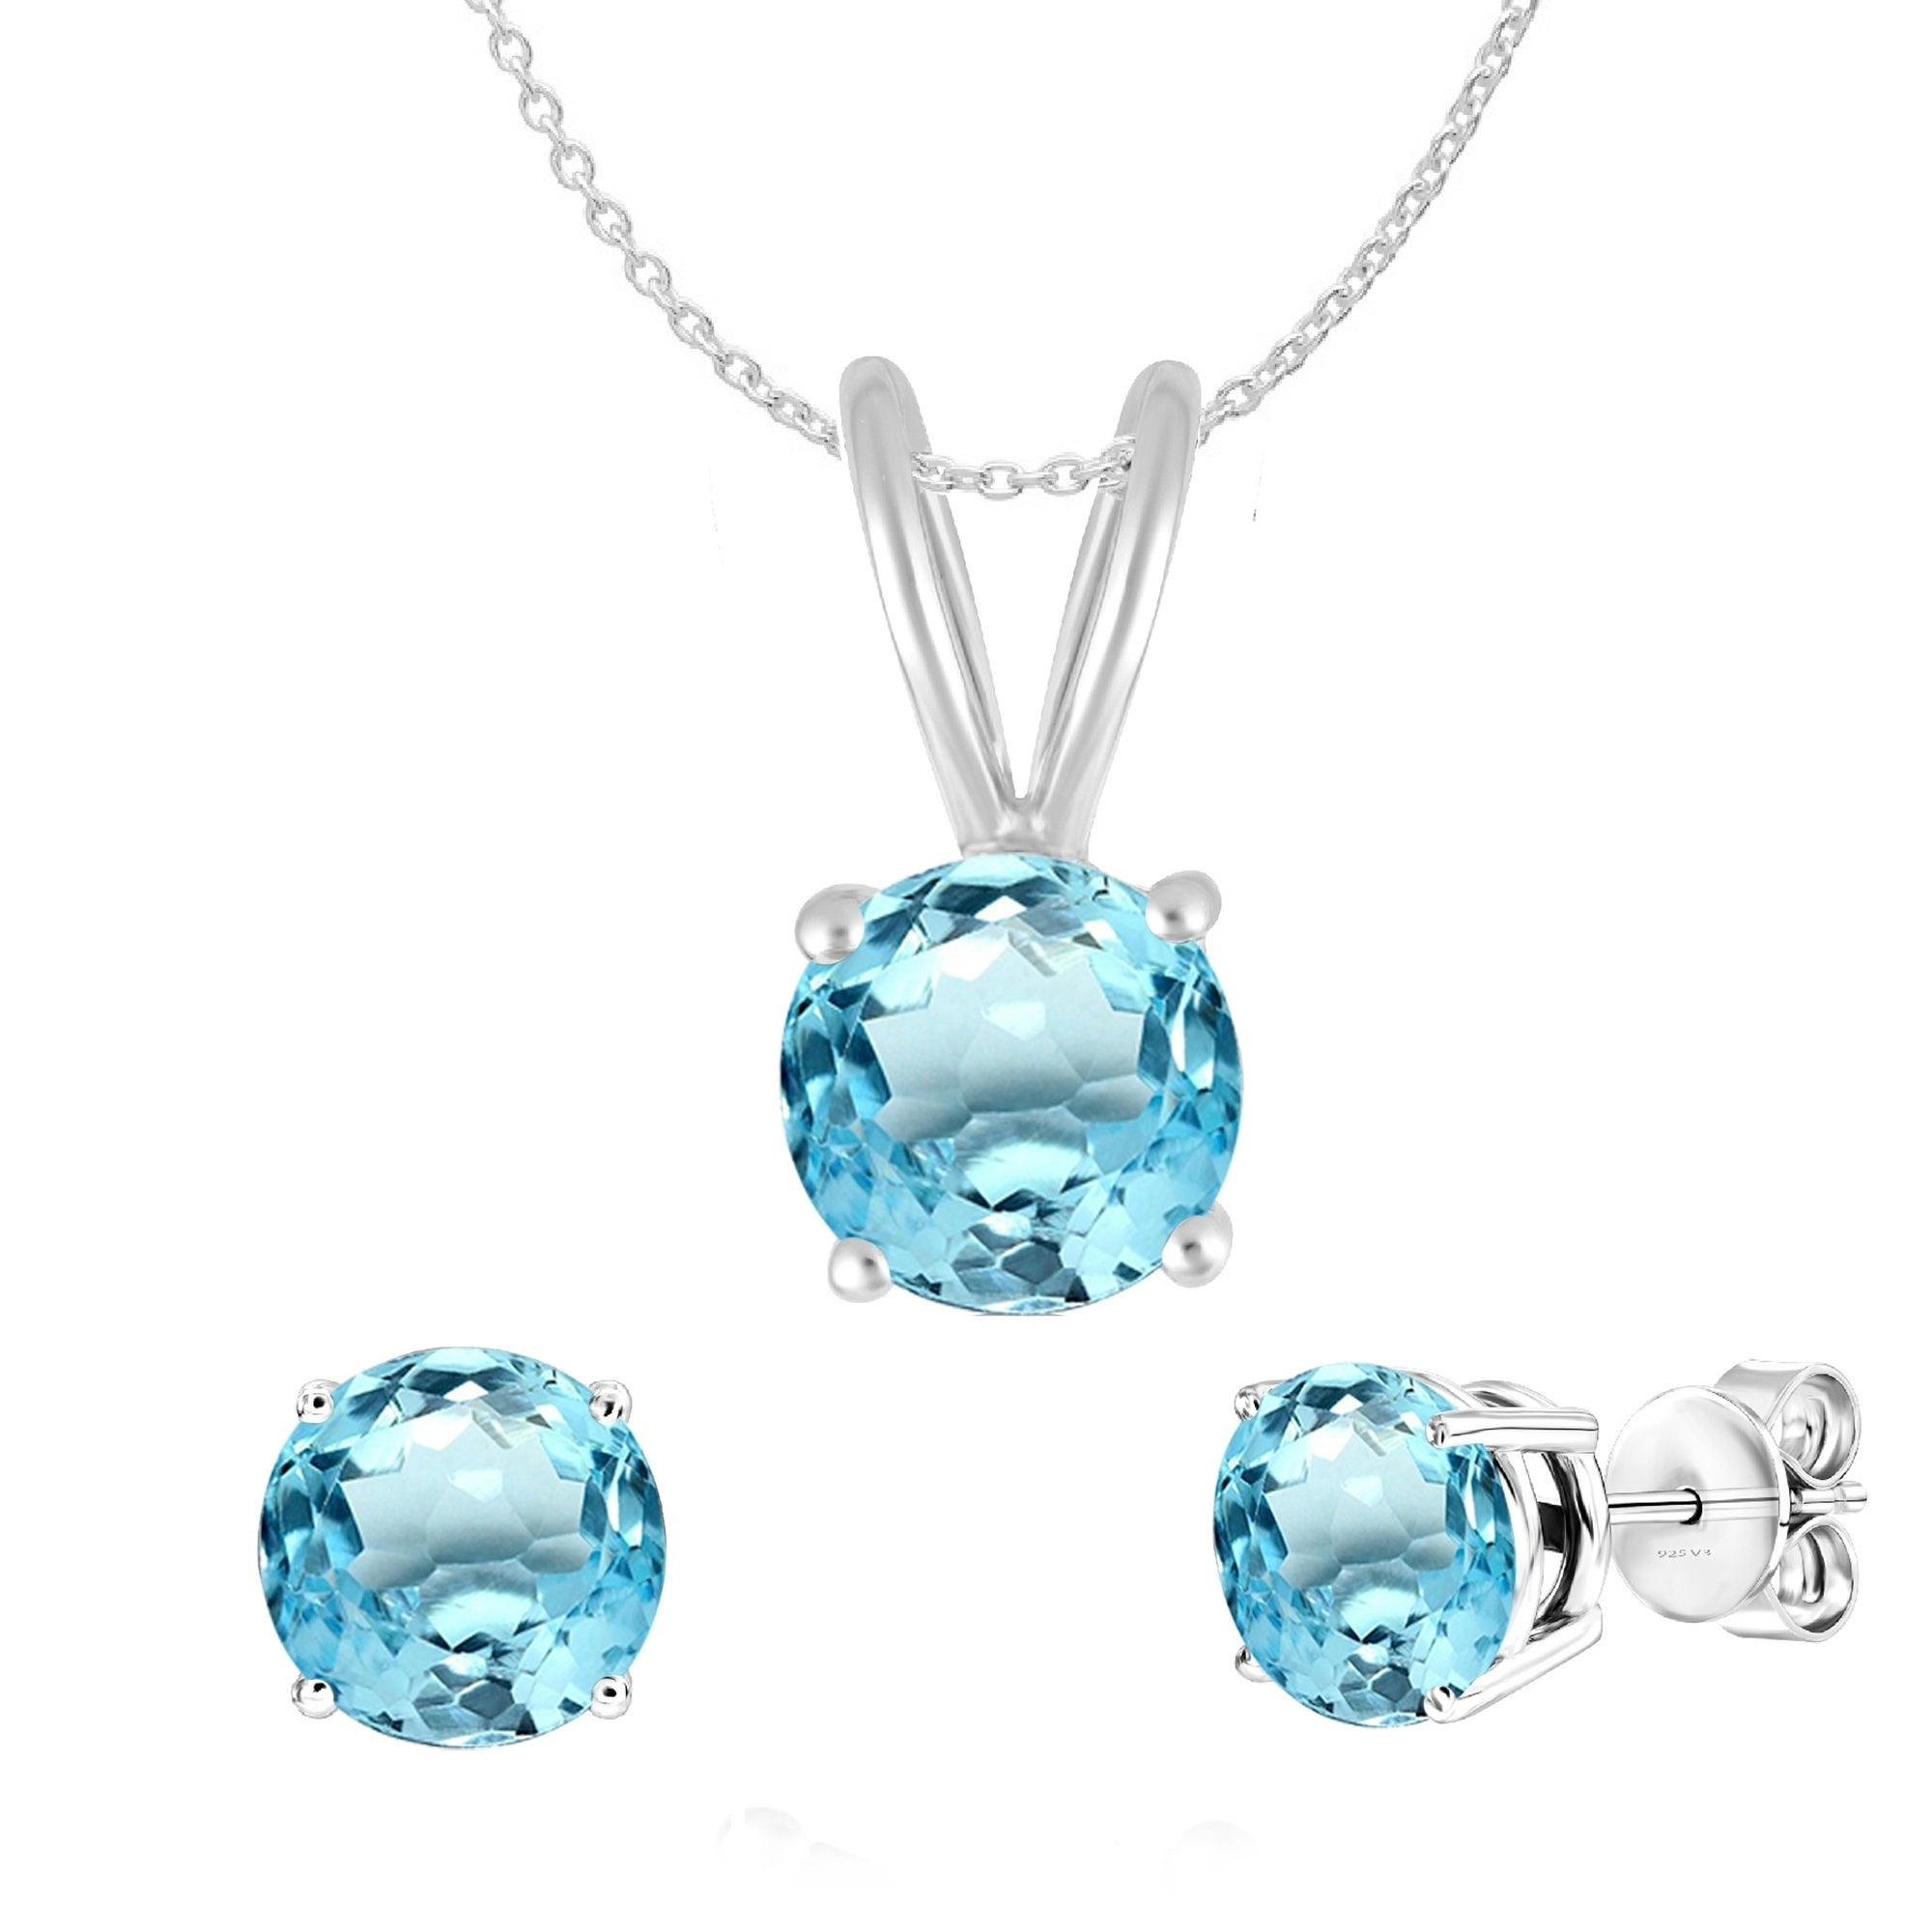 Details about  /Certified Natural Sky Blue Topaz 925 Sterling Silver Ring Pendant Earrings Set